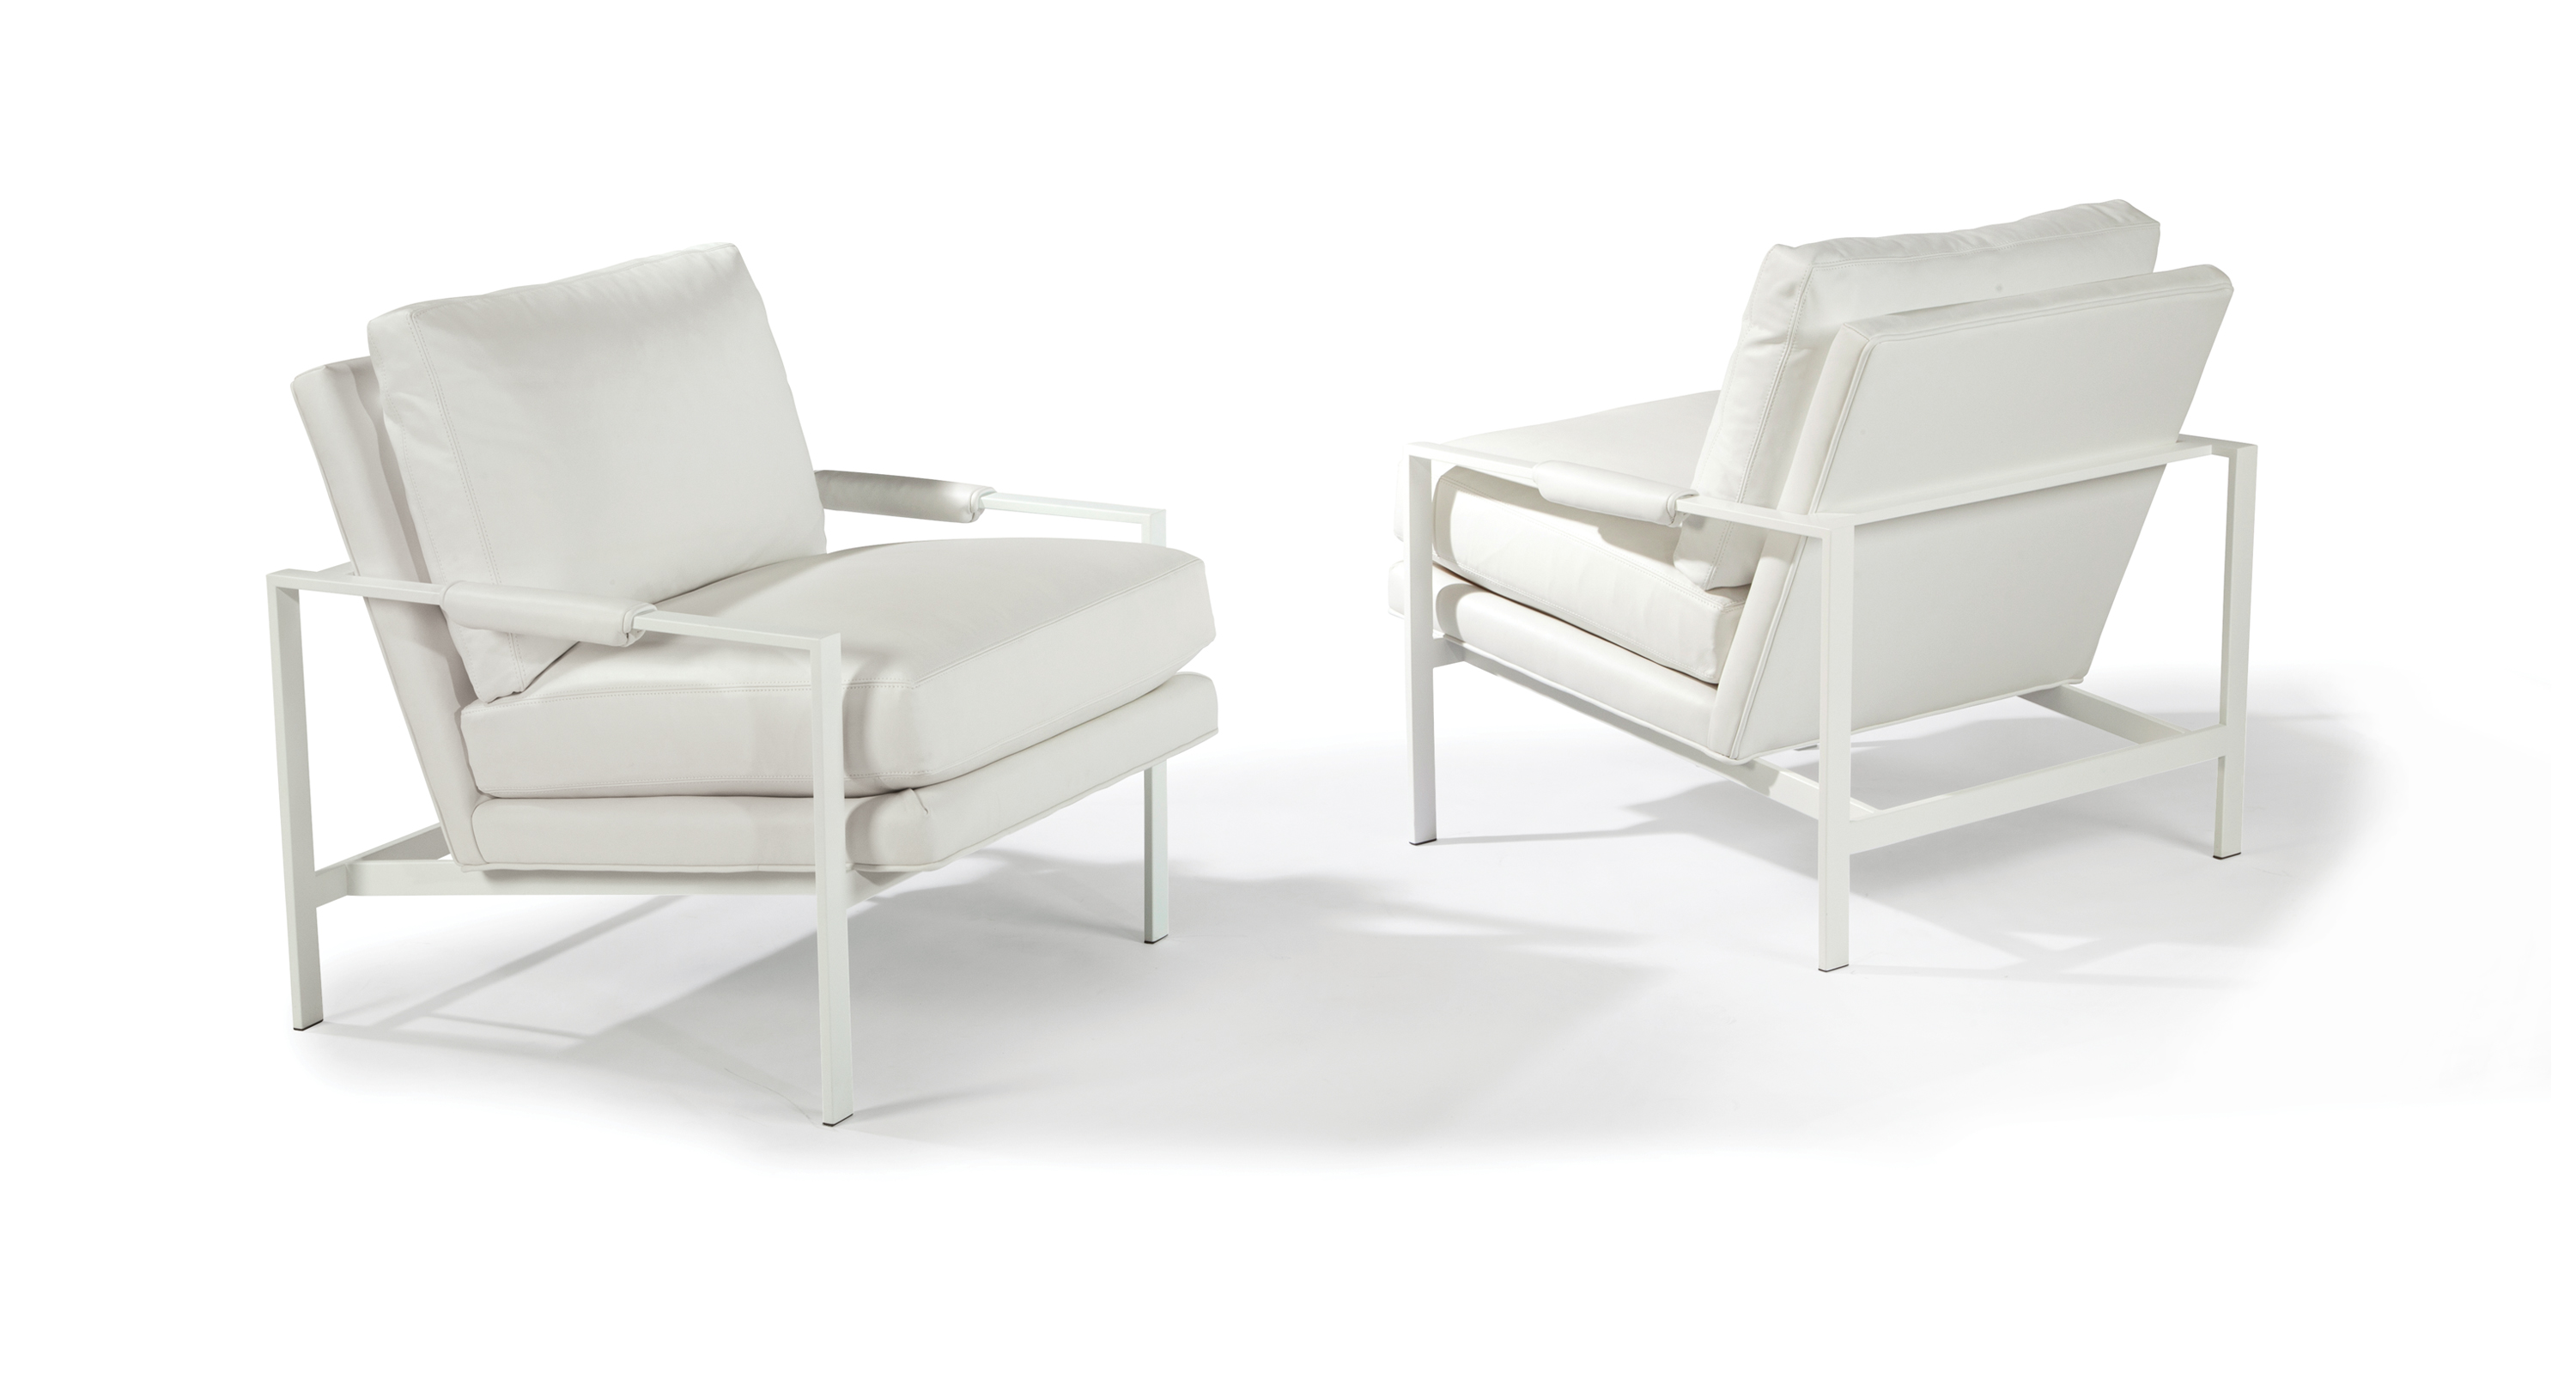 951 Design Classic Chair